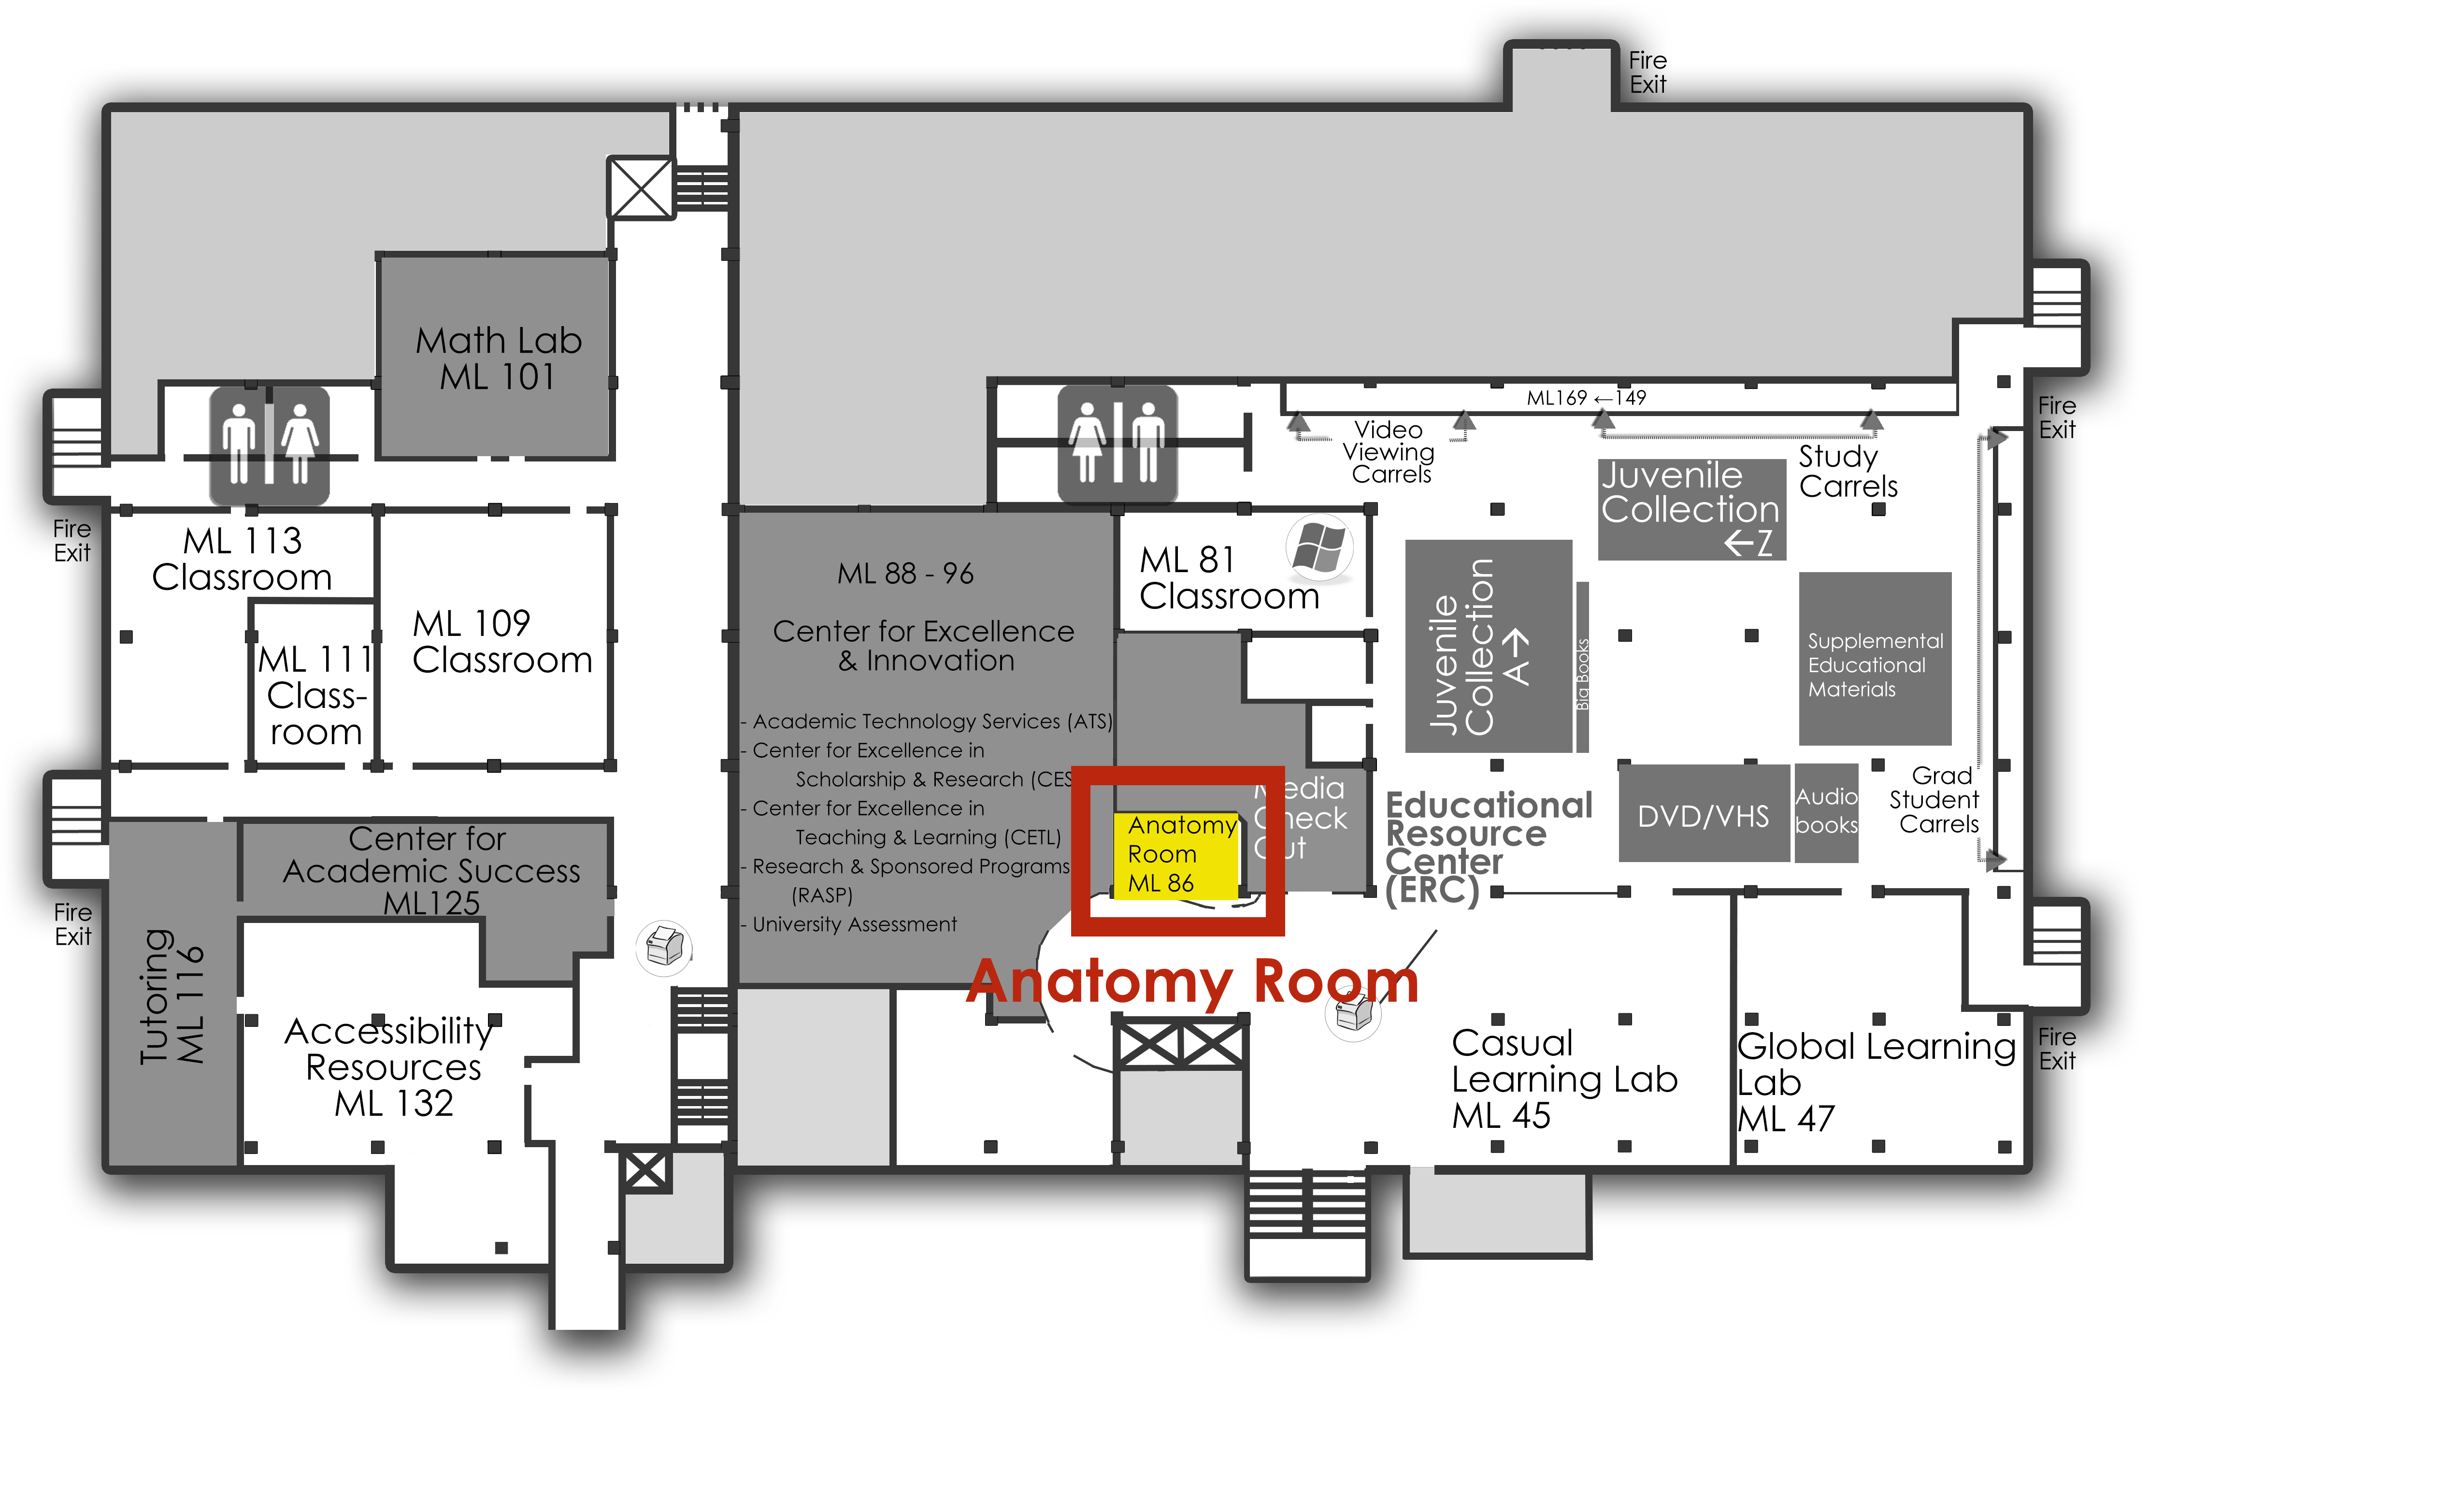 Anatomy room is located in Memorial Library, lower level east, near the media counter